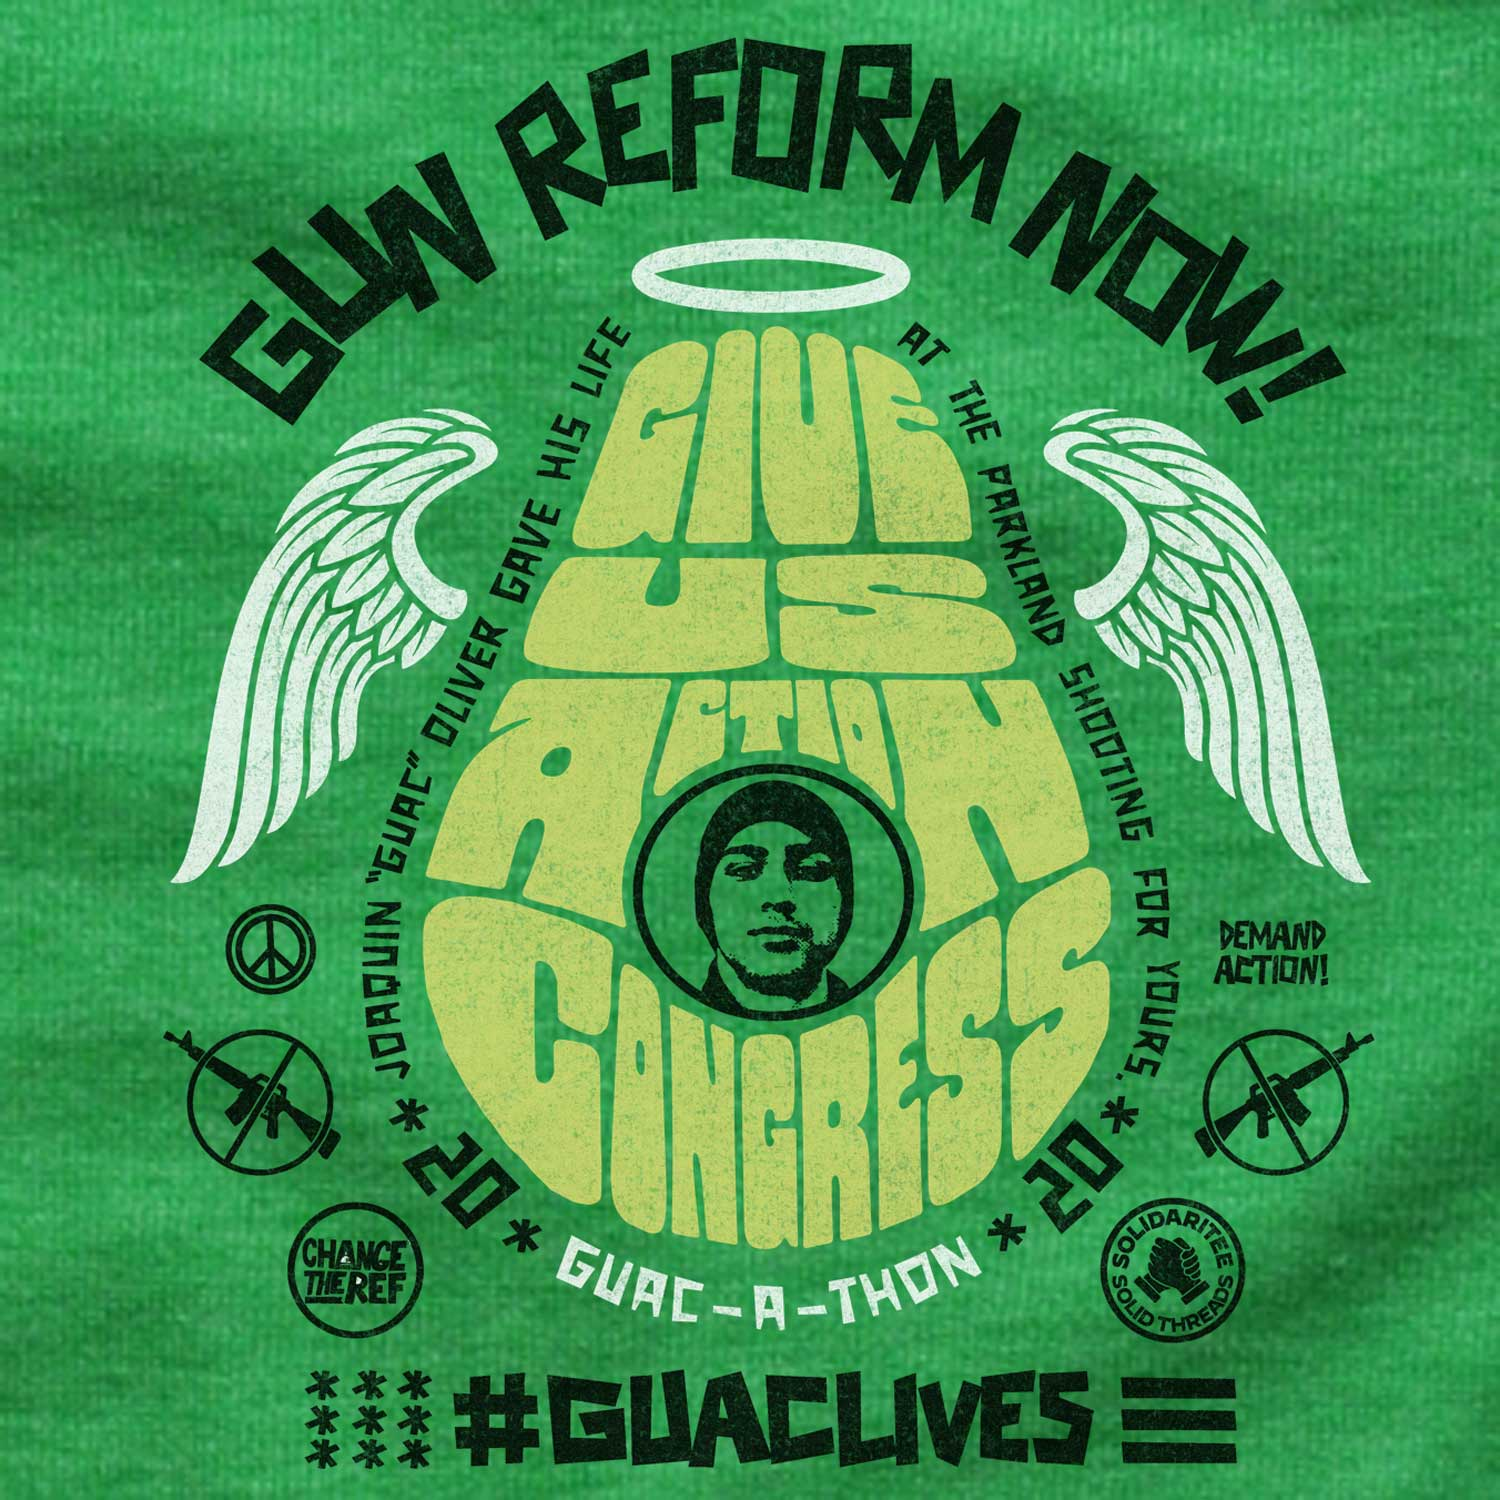 Baby Guac live give us action congress vintage inspired gun reform tee shirt with cool retro protest graphic | #GUAClives in SolidariTEE with Change The Ref